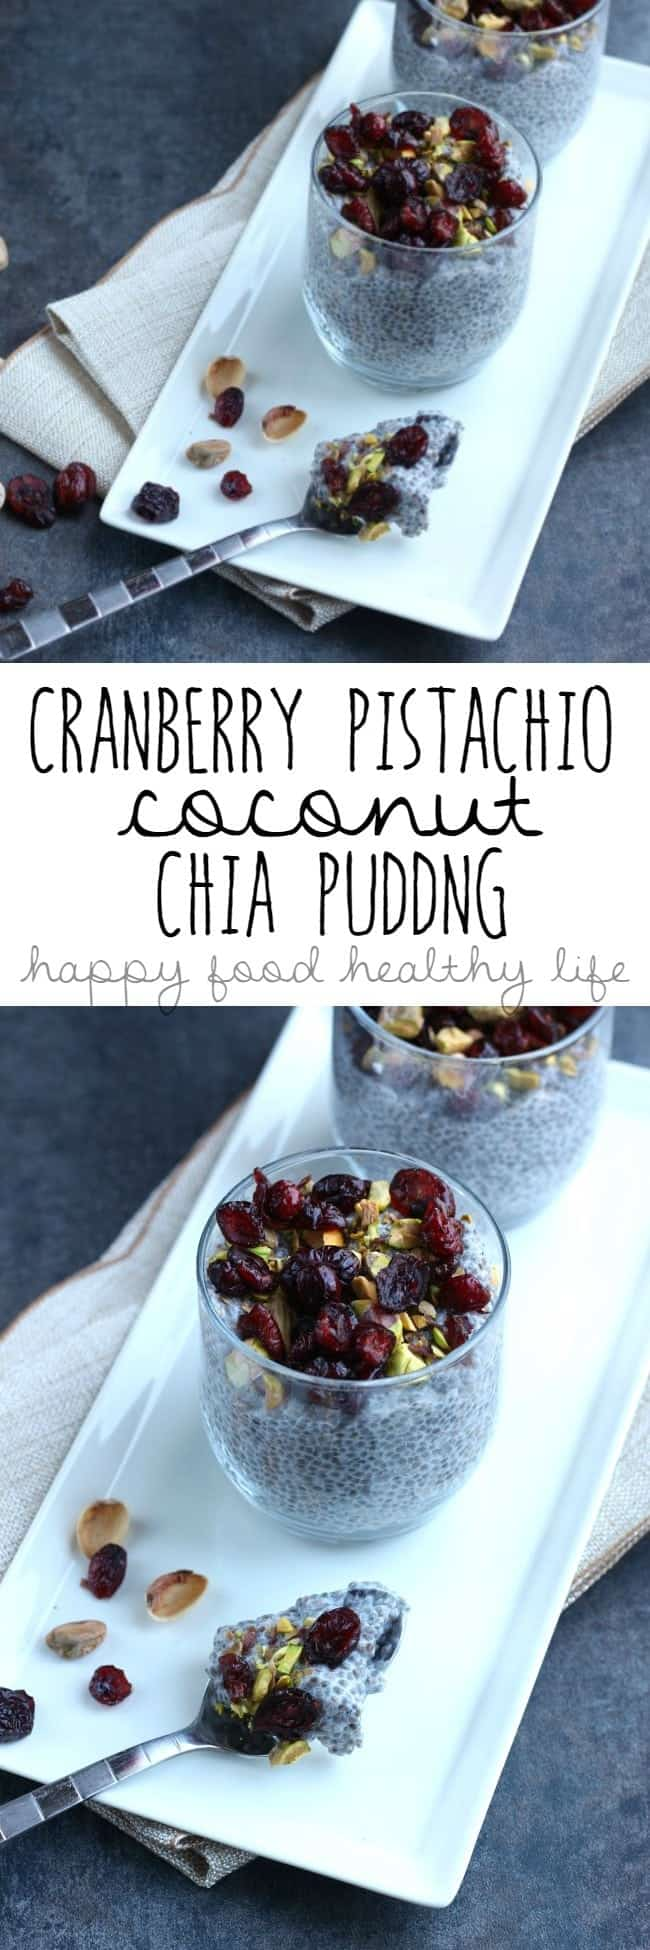 Cranberry Pistachio Coconut Chia Pudding - a superfood healthy snack full of a ton of flavor - www.happyfoodhealthylife.com